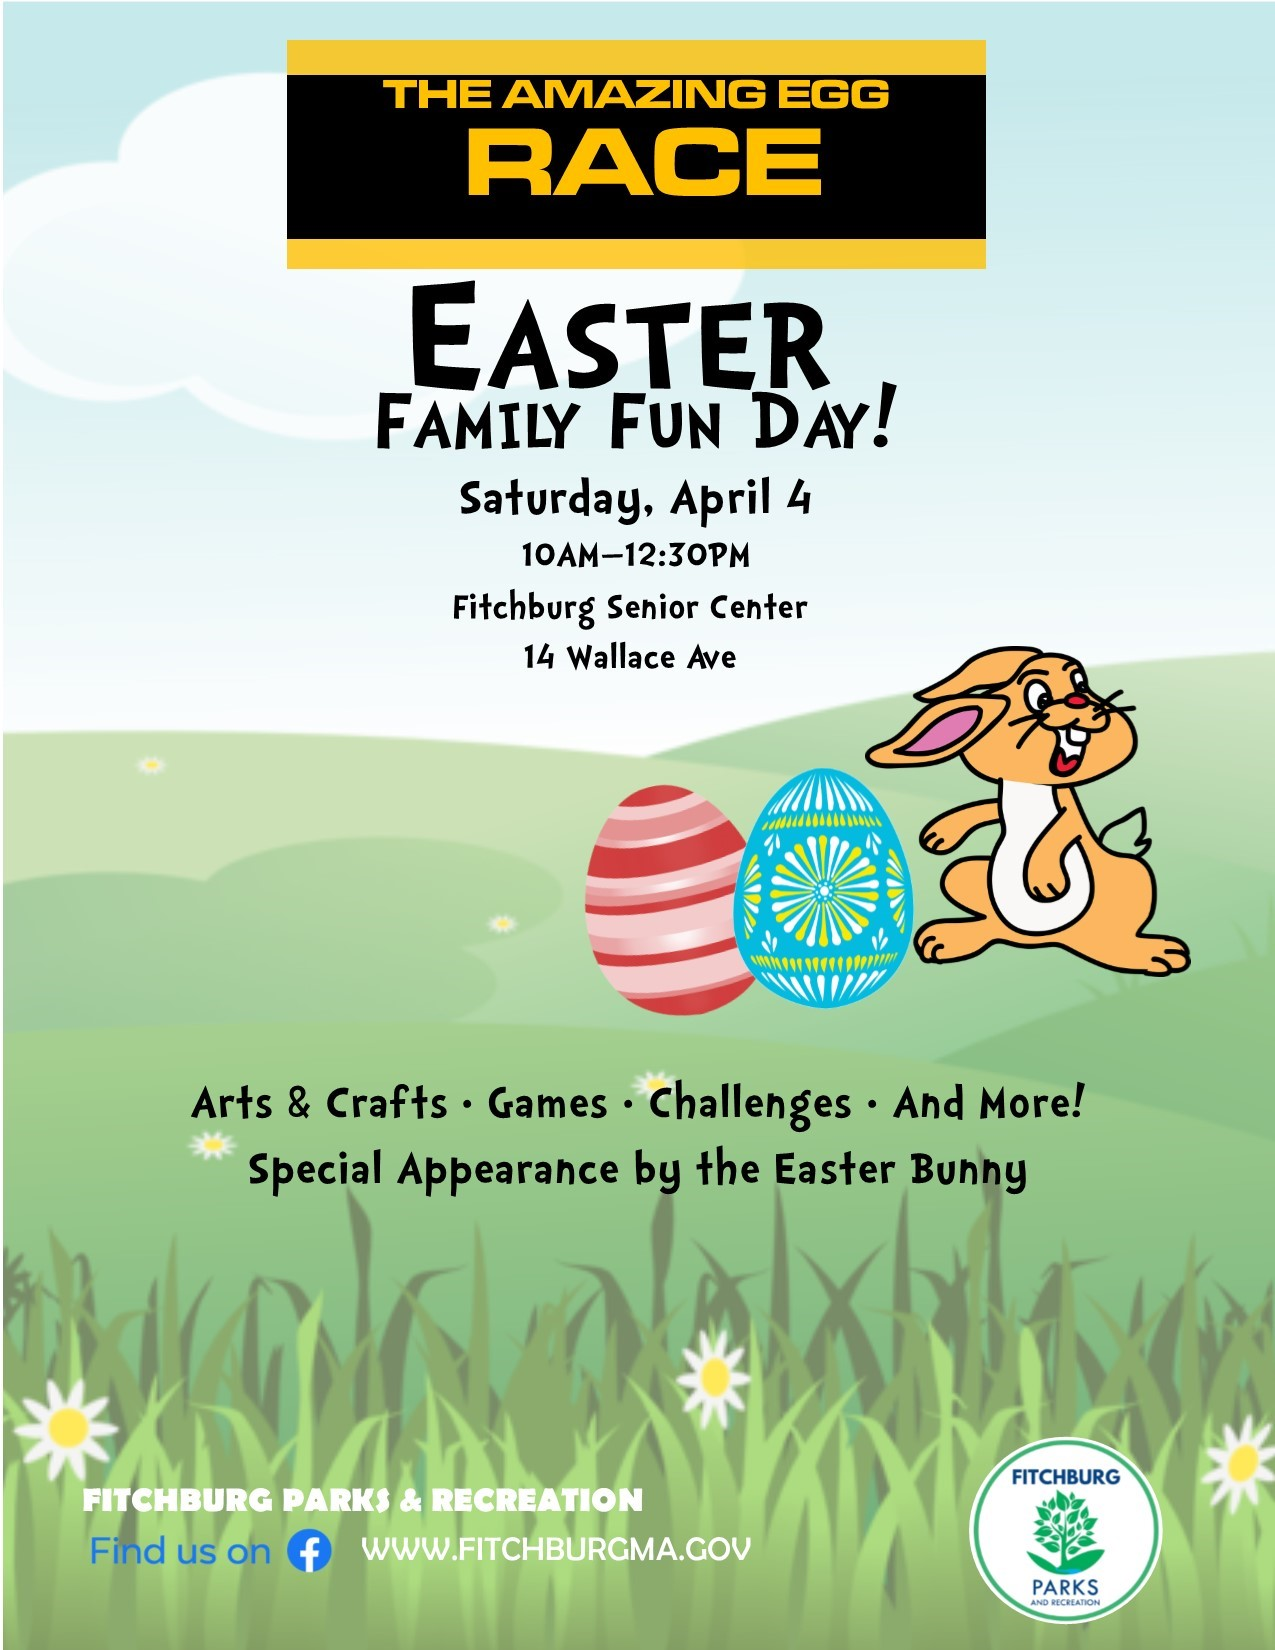 Amazing Egg Race 2020, Saturday, April 4th 10-12:30 PM